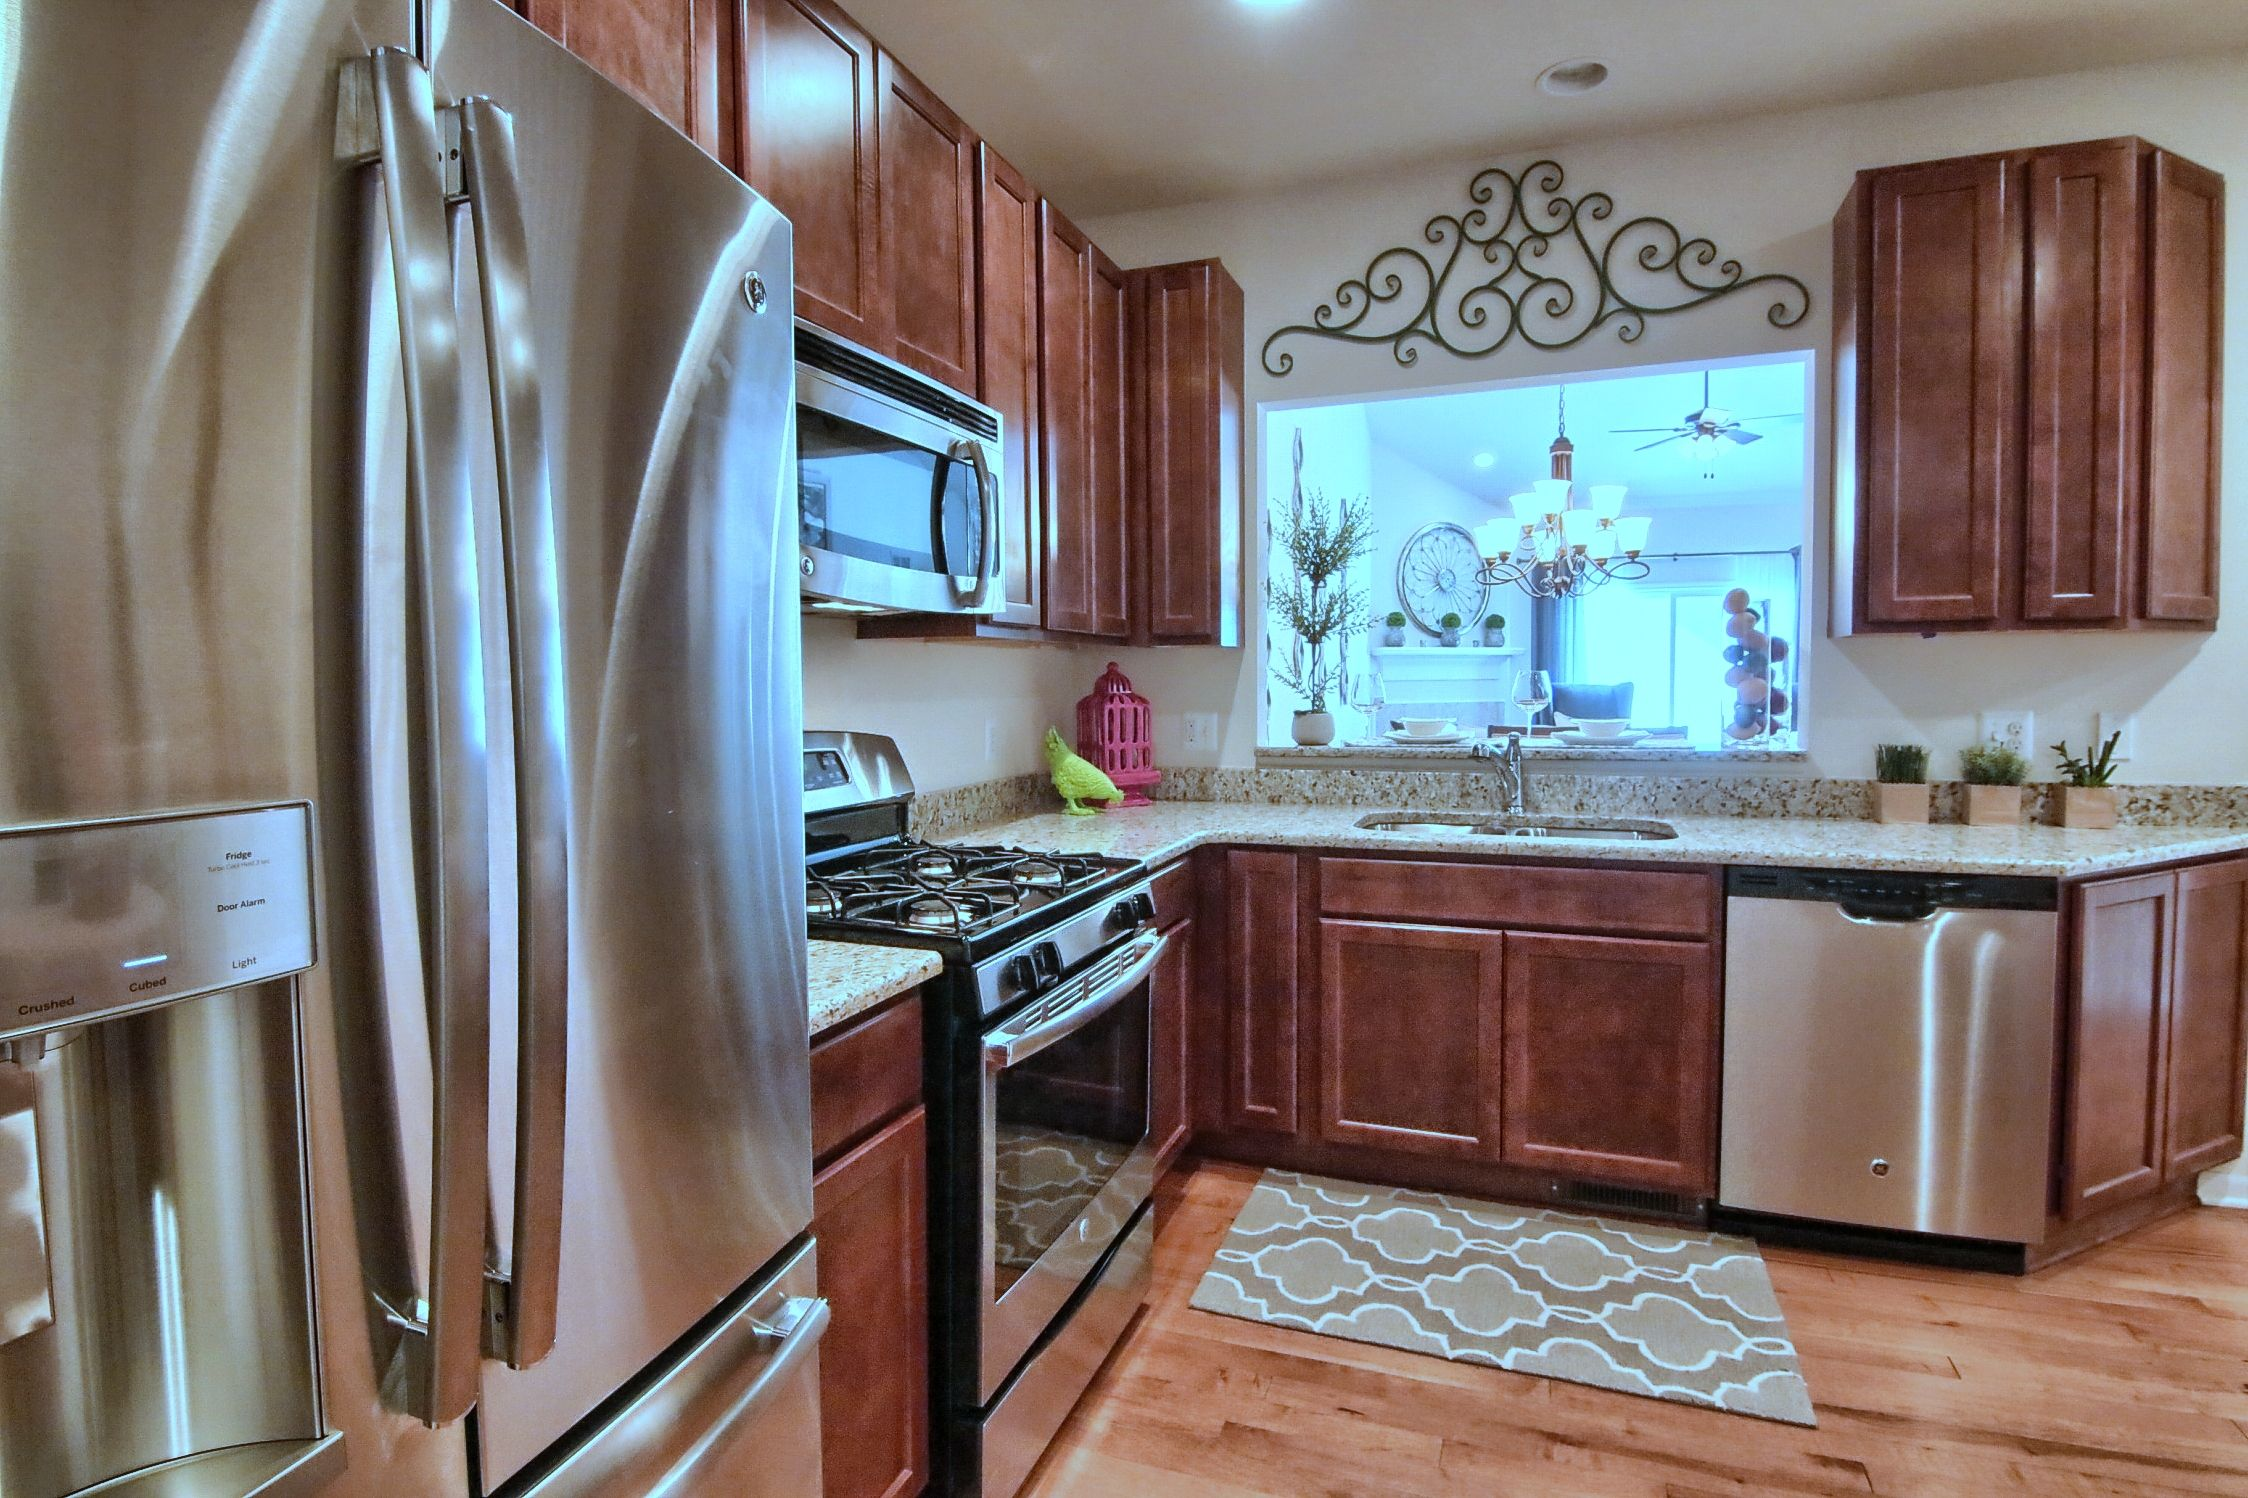 Spacious Kitchen:Photos Are Not Of Actual Condo But Of A Similar Product.